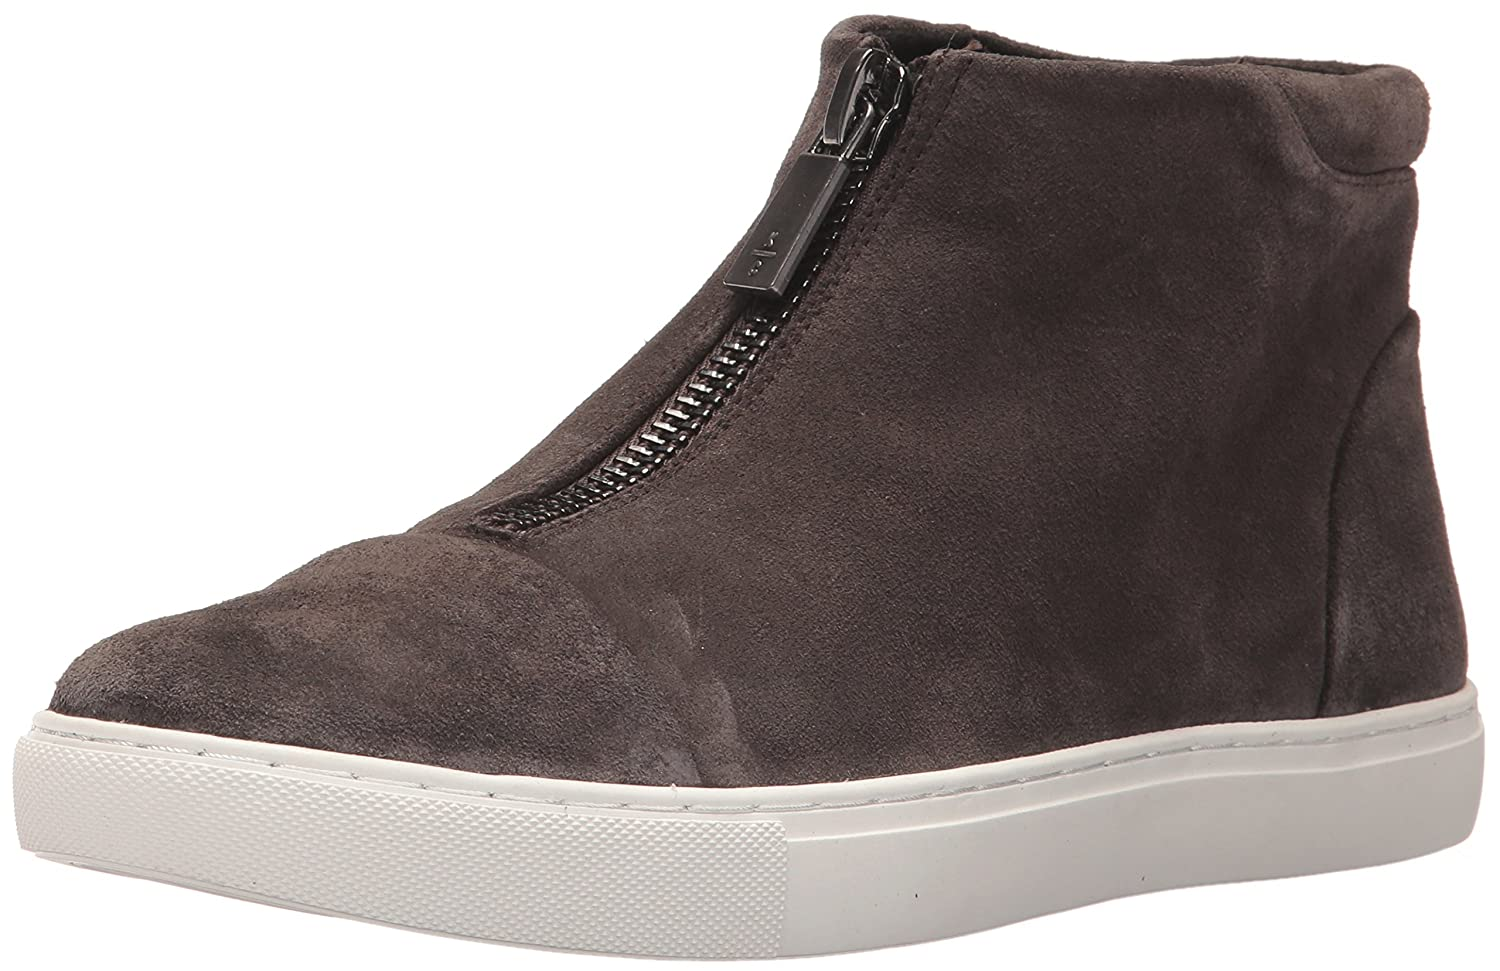 Kenneth Cole New York Women's Kayla High Top Front Zip Suede Fashion Sneaker B06ZXRMD7D 8.5 B(M) US|Asphault